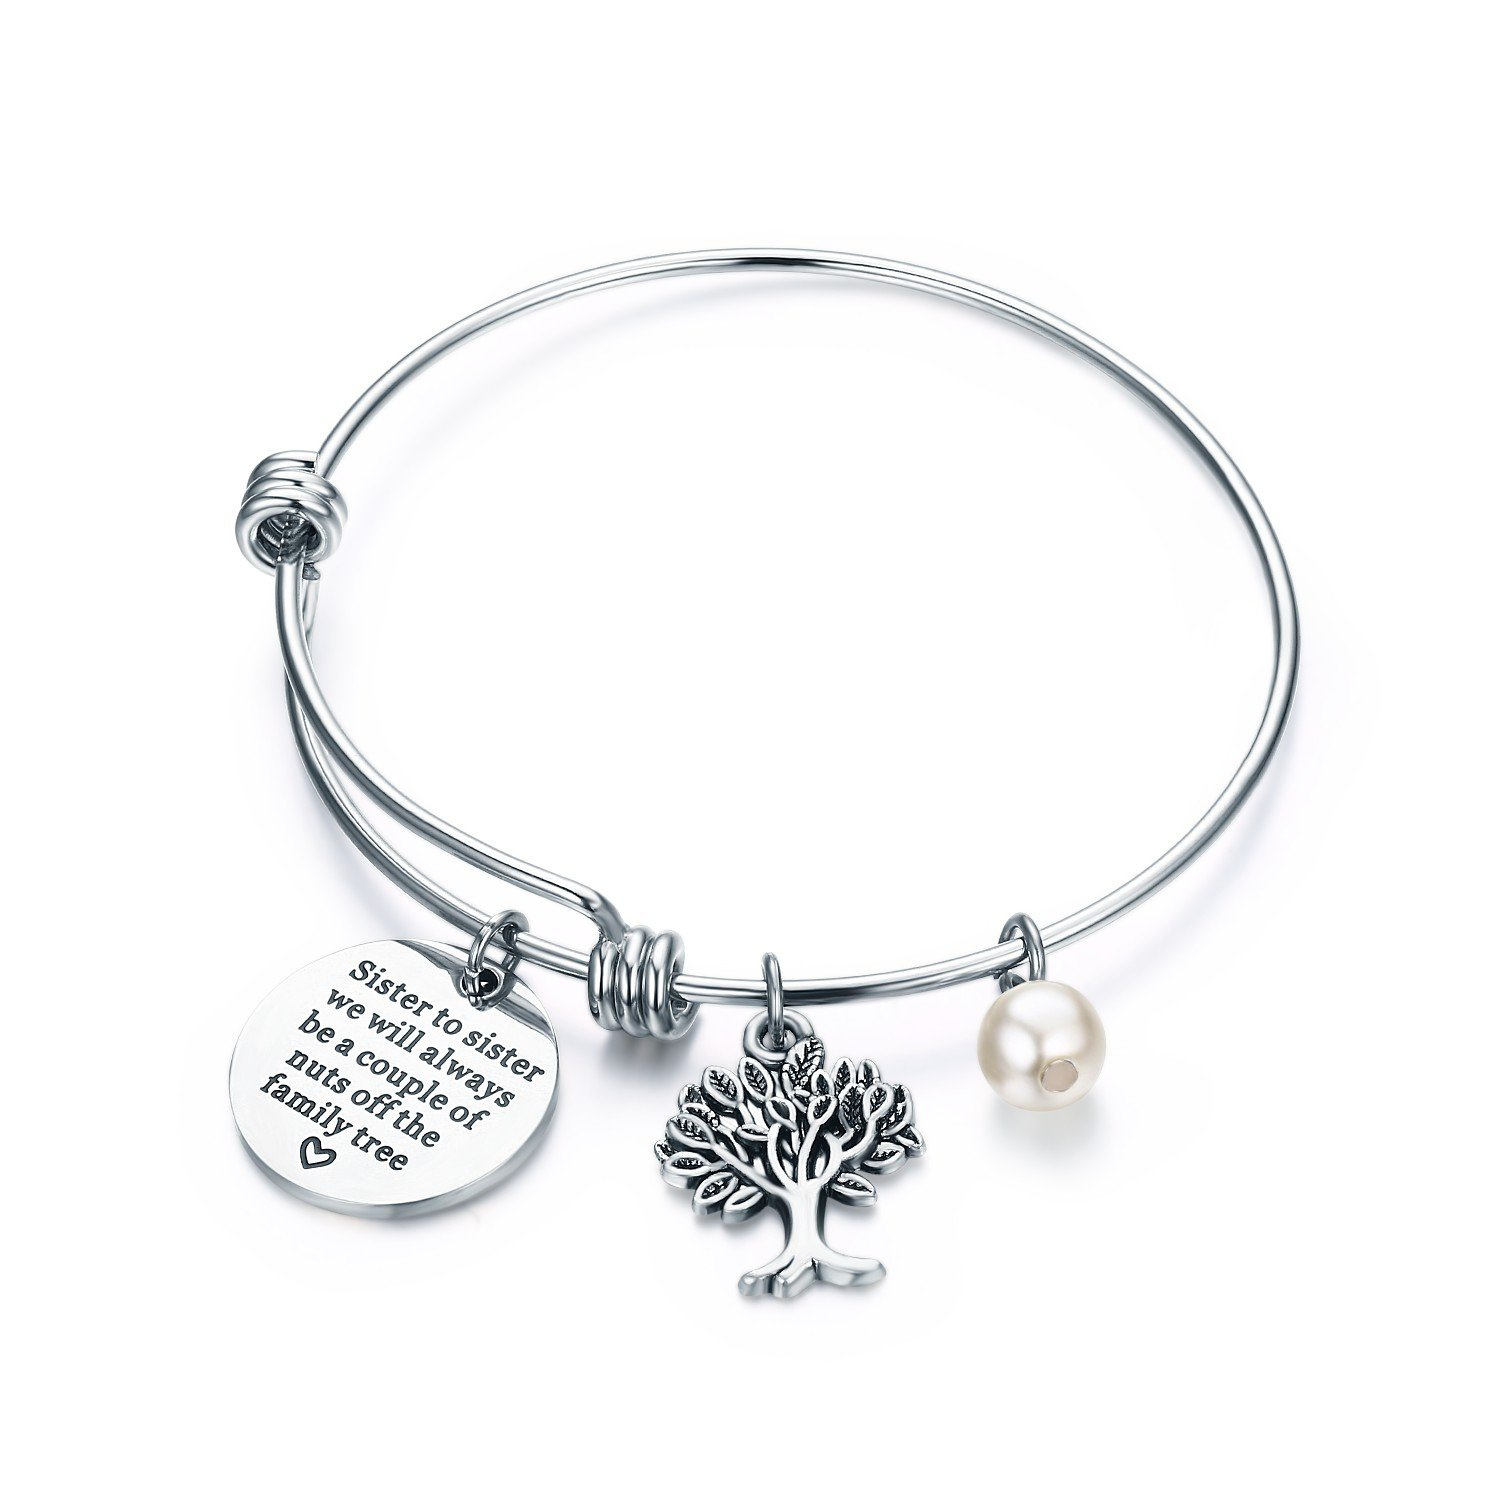 28b677f6485af CJ & M Sister Bangle Bracelets Jewellery - Sister to Sister We Will Always  Be, A Couple of Nuts from the Family Tree,Gift for Sister